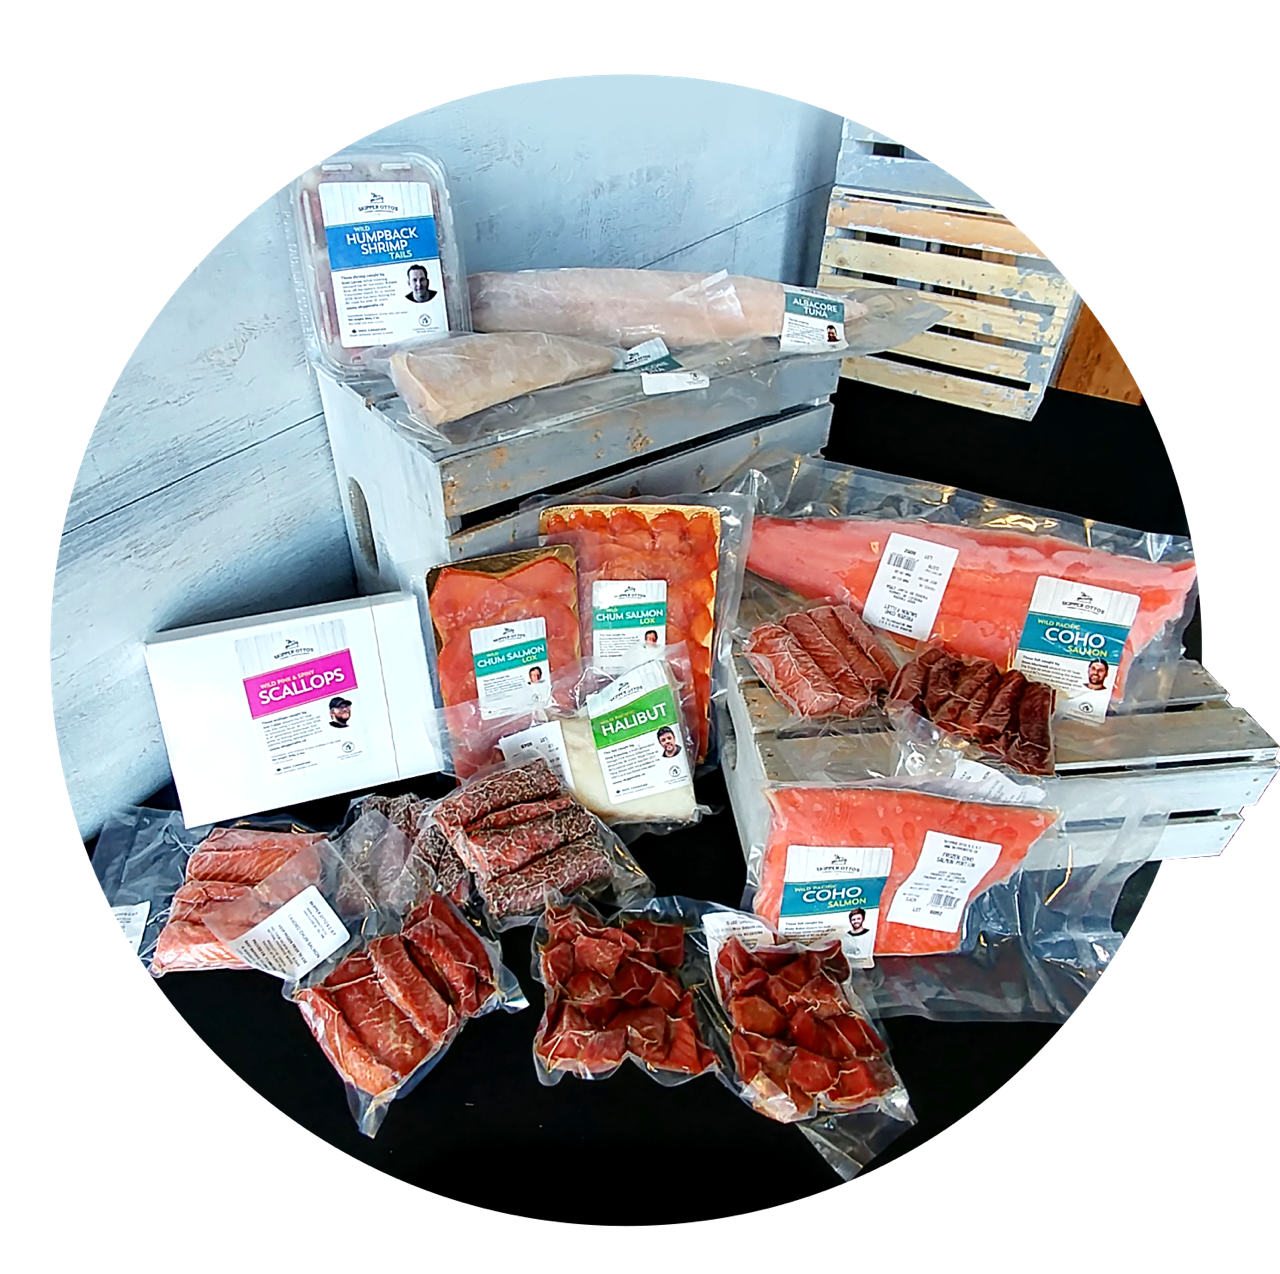 Example of a $300 share: a box of scallops, several packs of smoked and candied salmon, a pack of shrimp, several fillets of both salmon and white fish.